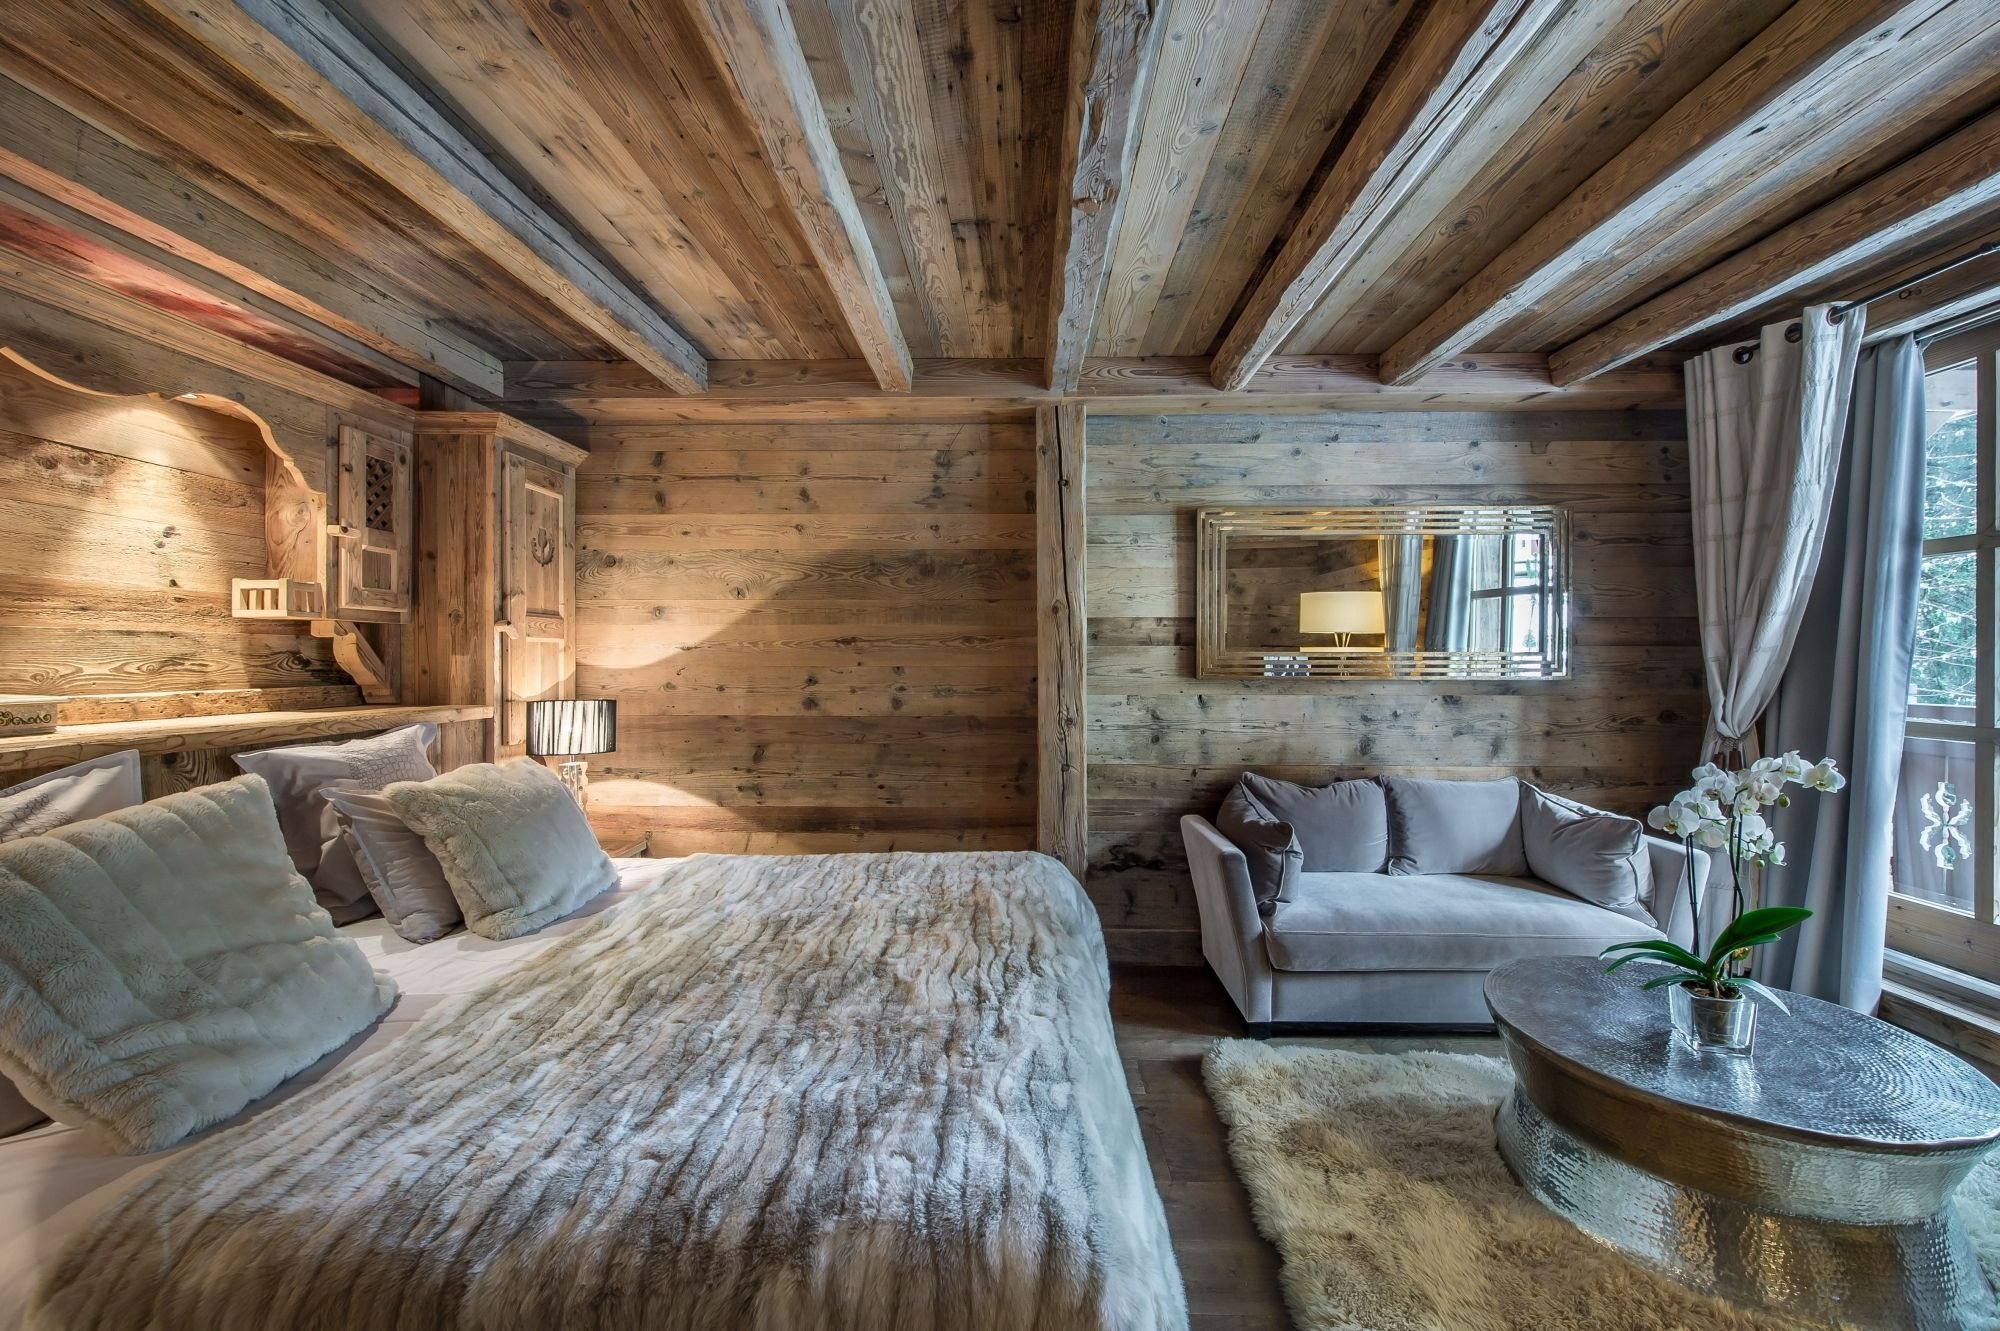 Chalet Maria | K2, Courchevel 1850 and Luxury